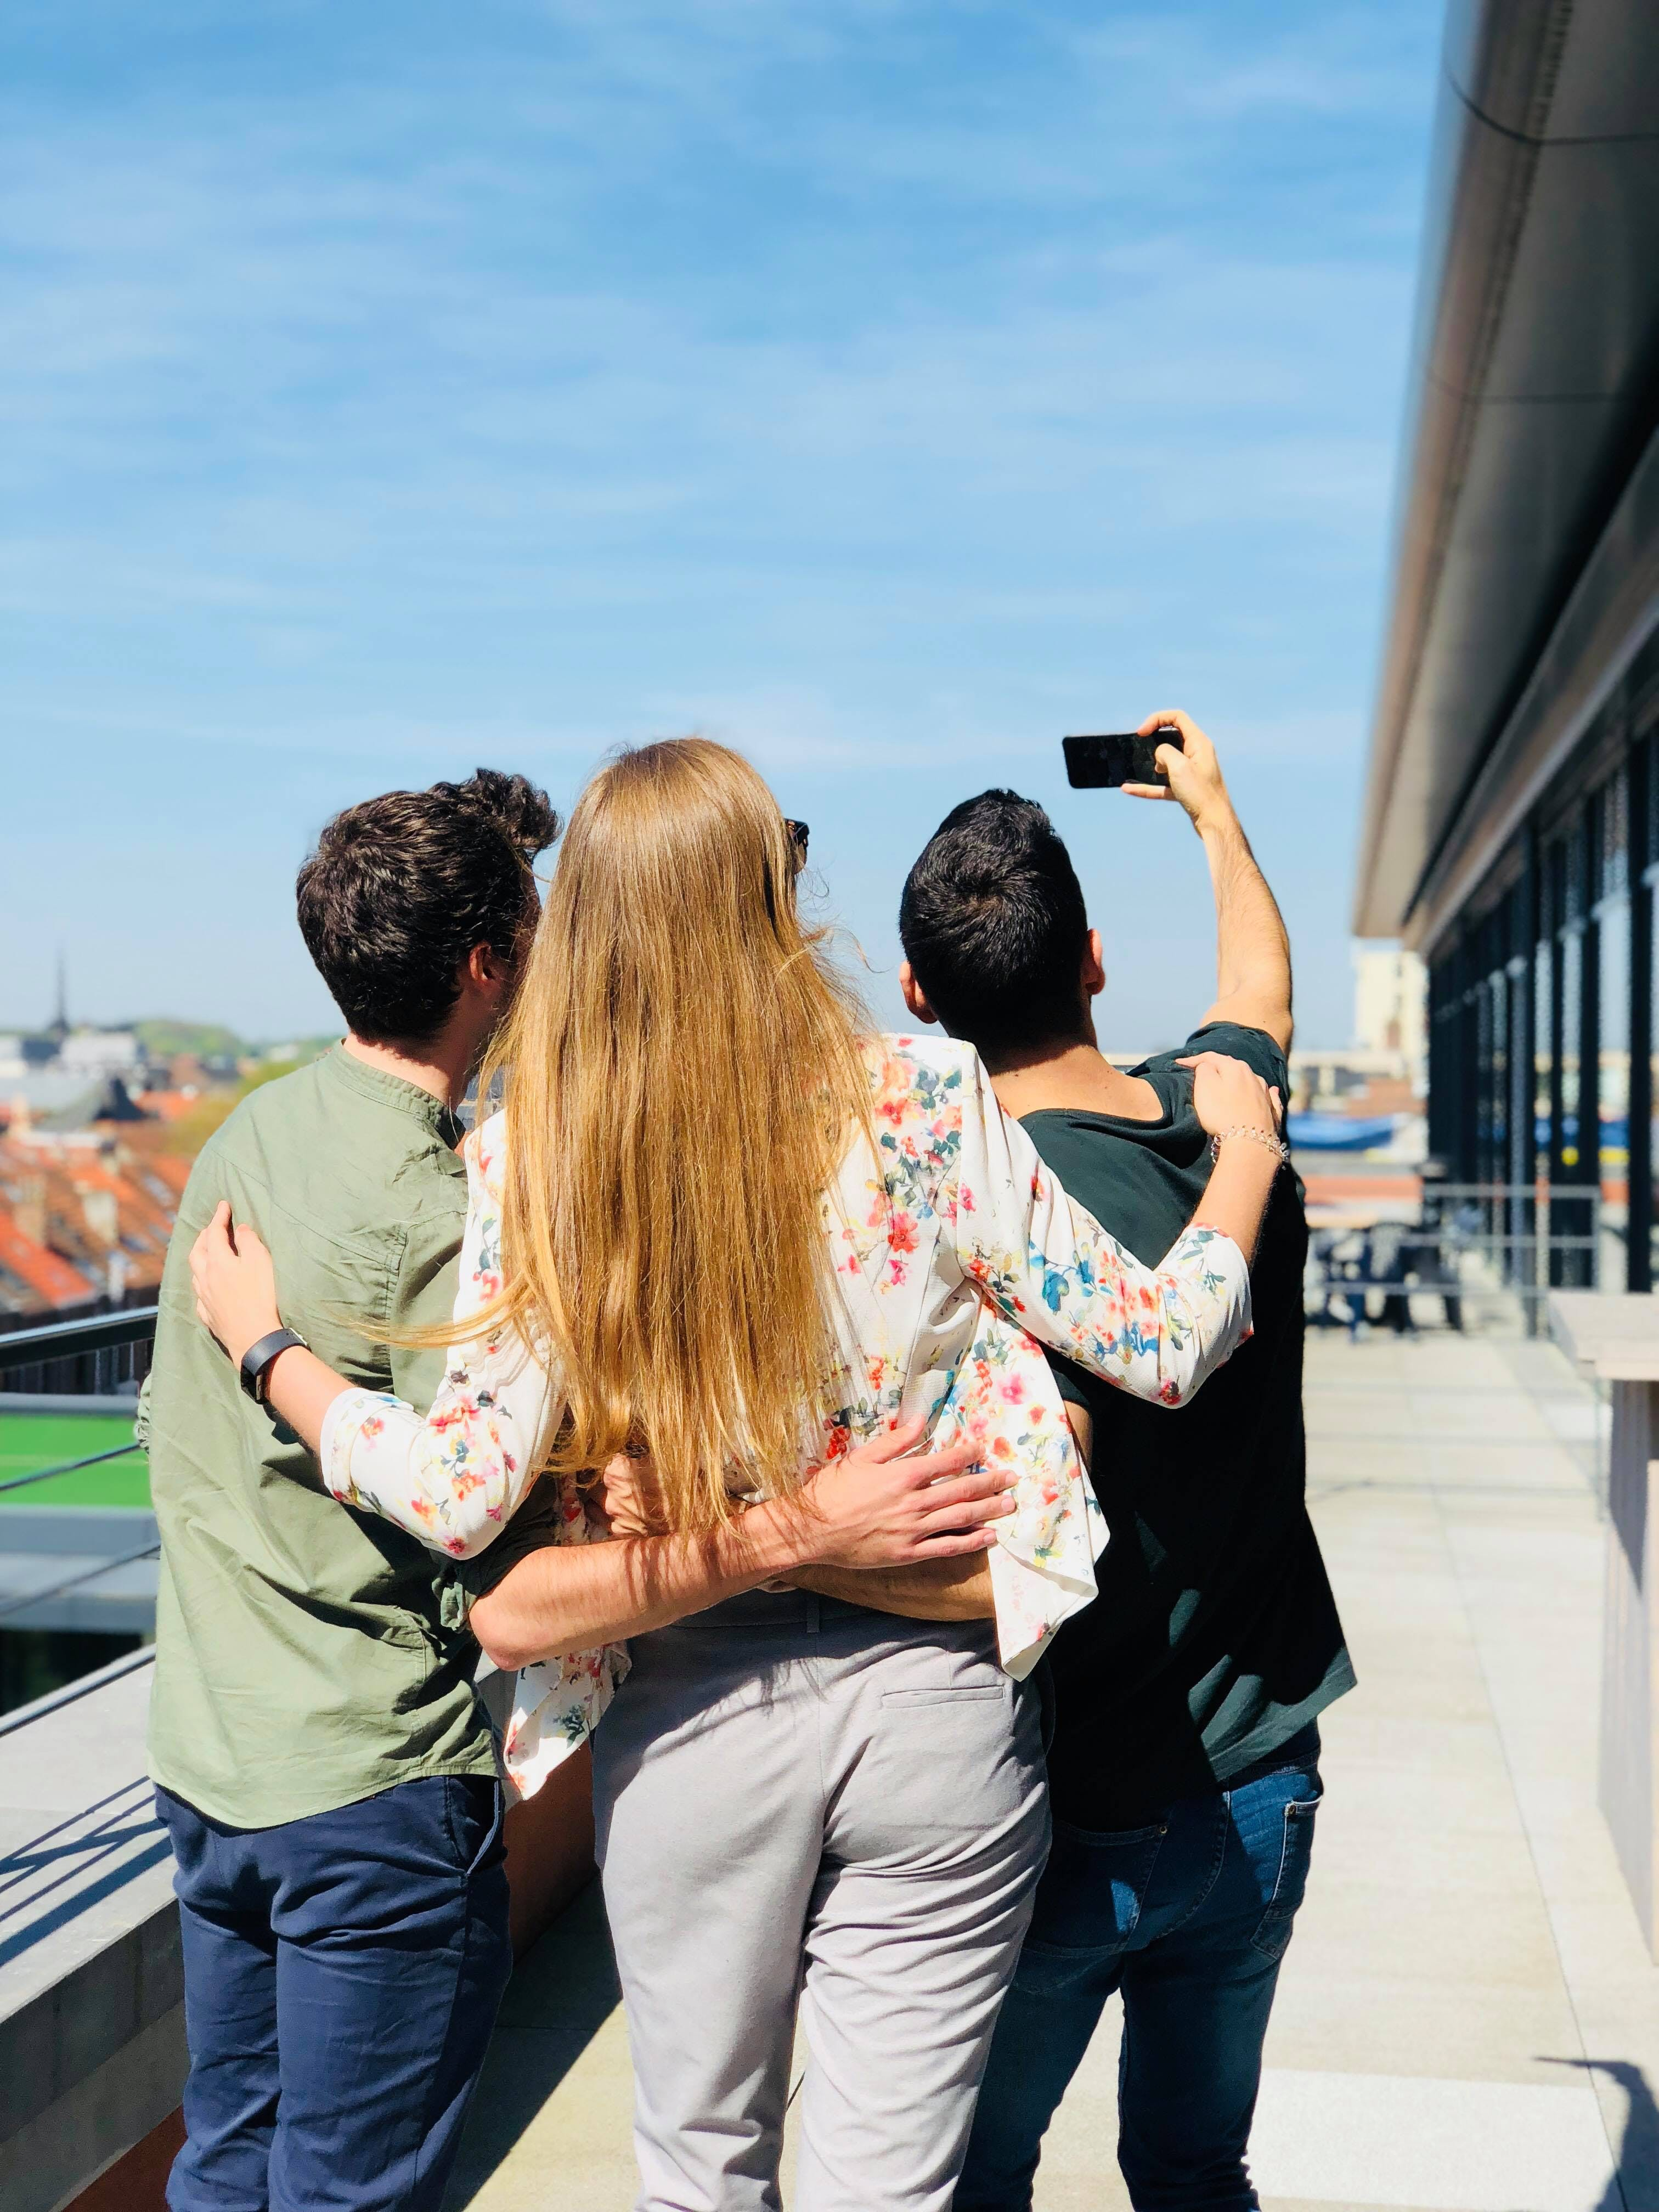 Three Person Doing Selfie Under Sunny Sky